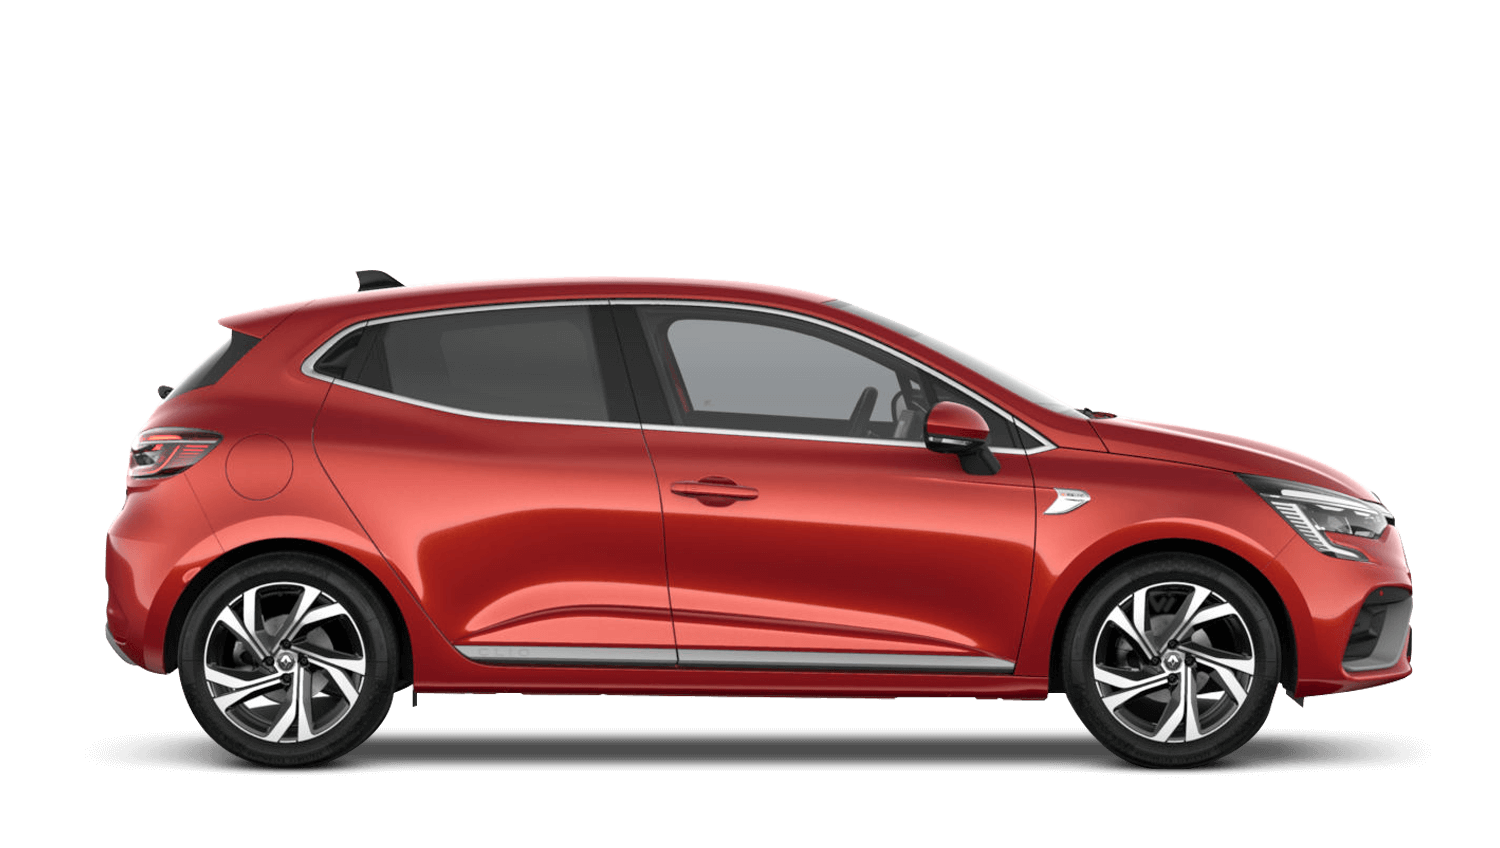 Flame Red All-New Renault CLIO